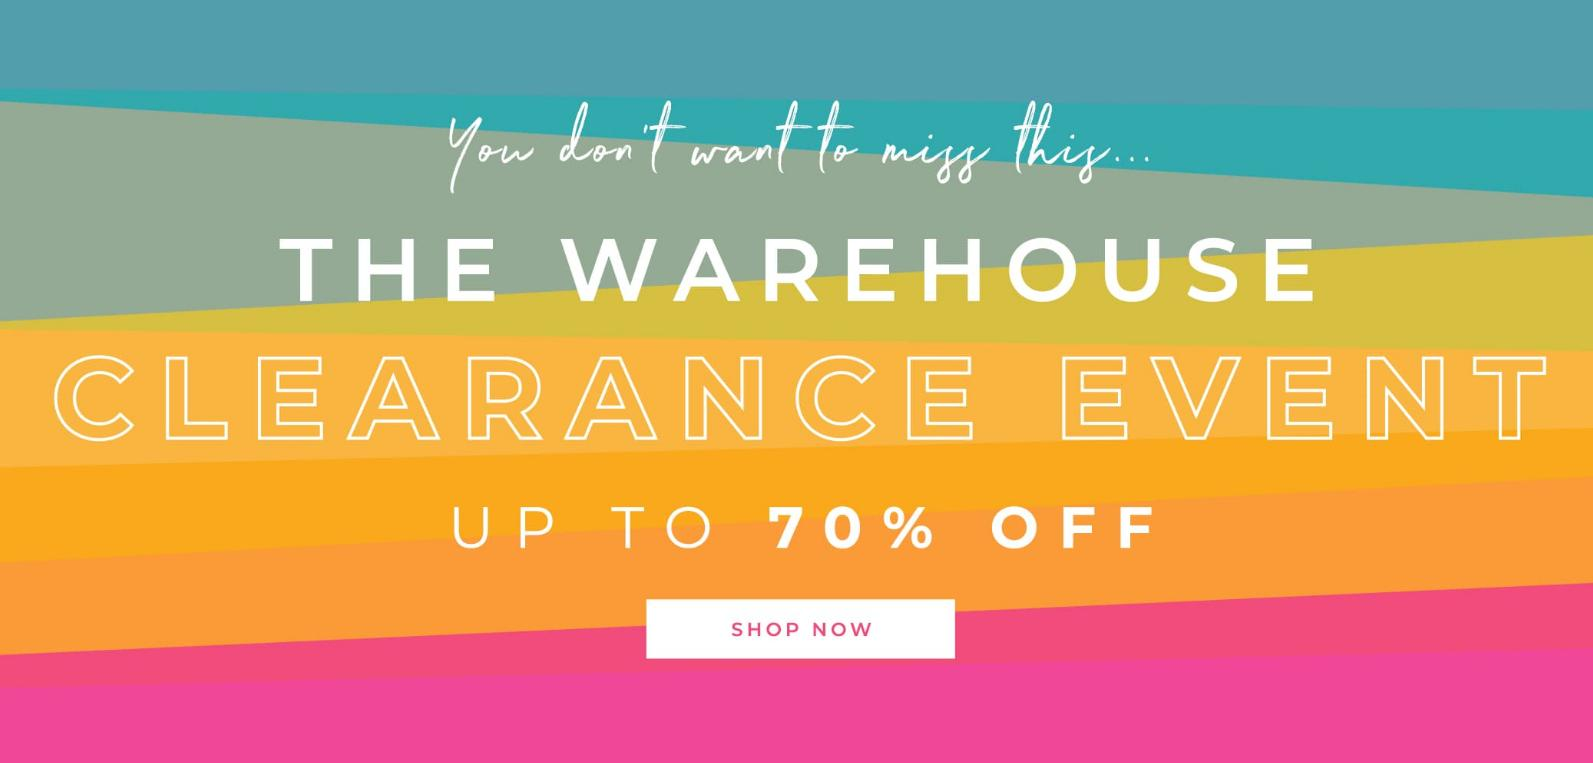 Evans Clothing Evans Clothing: Sale up to 70% off plus size clothing and shoes